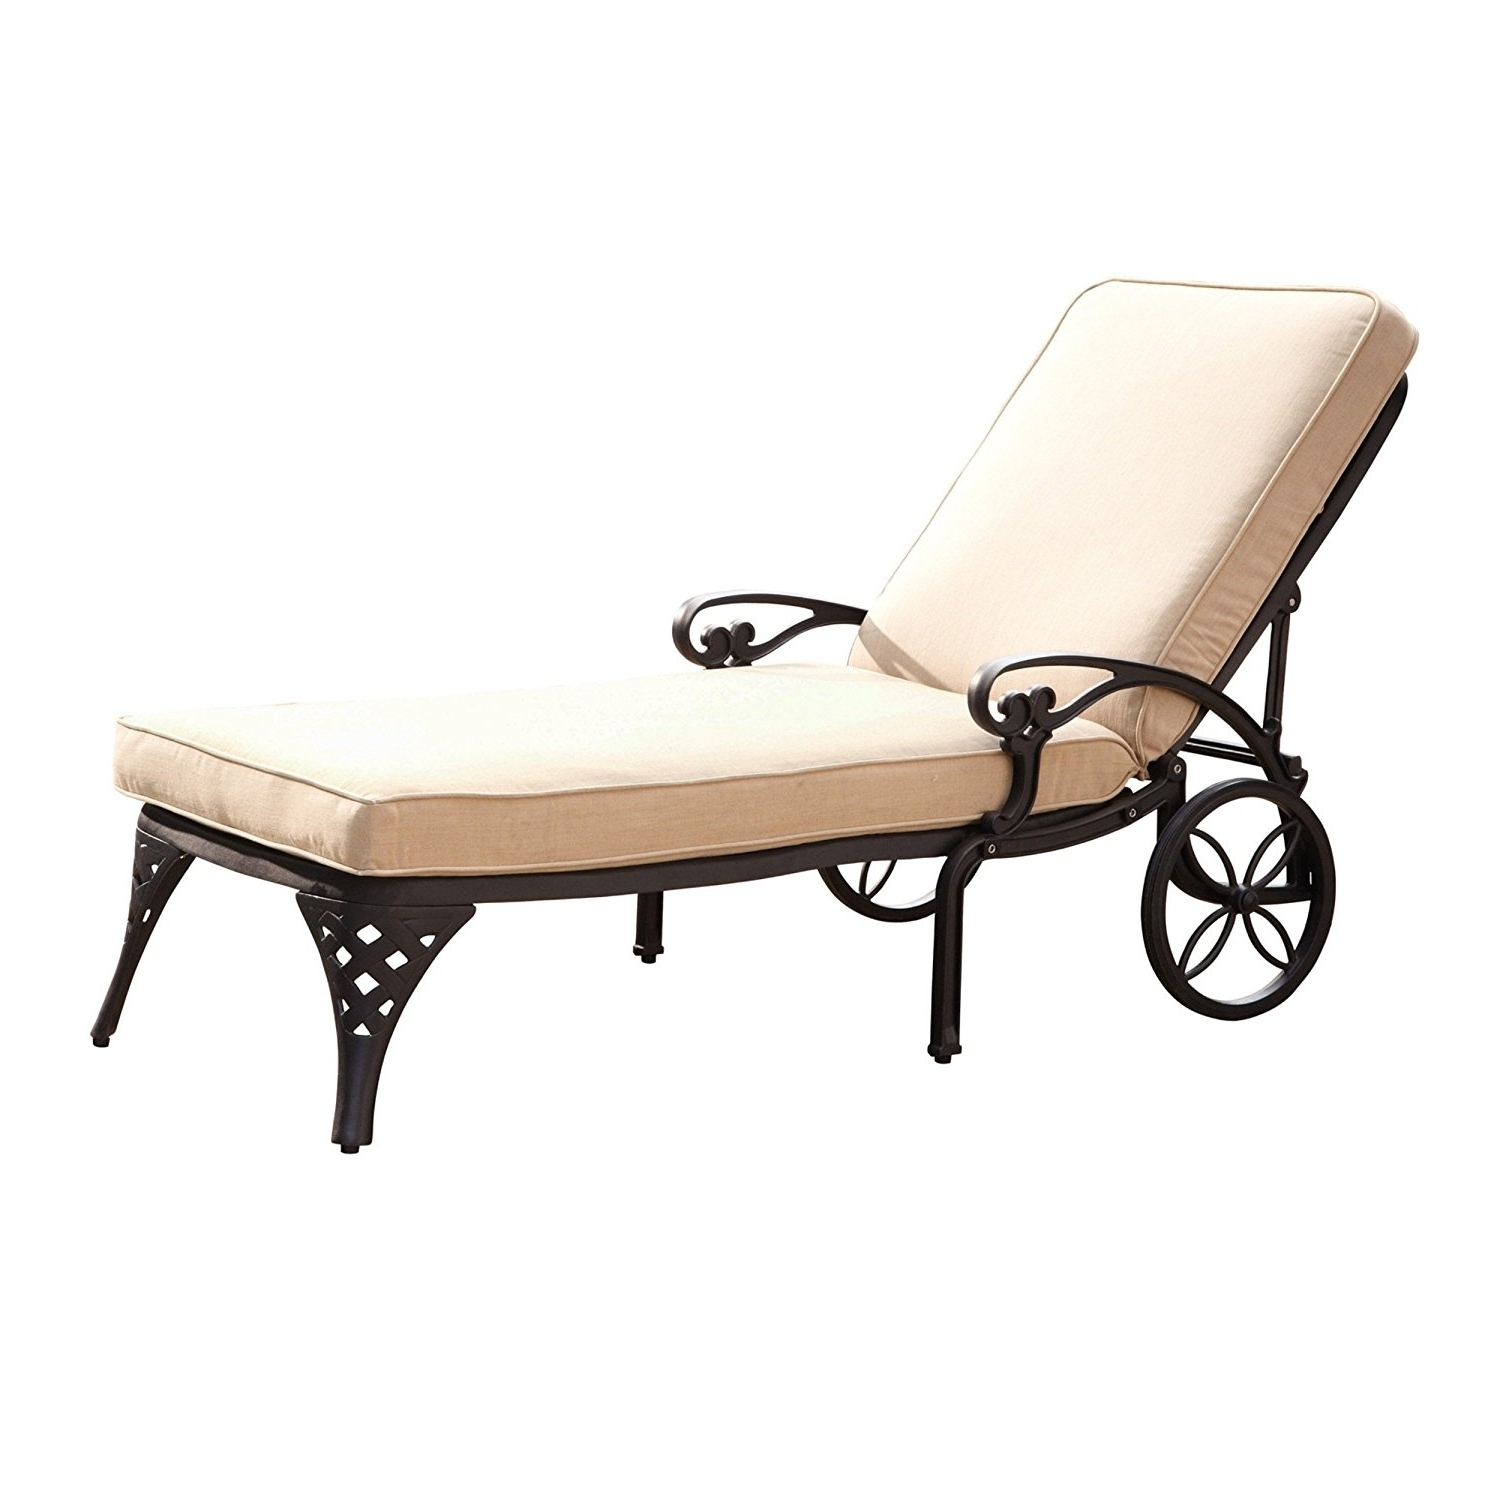 Widely Used Aluminum Chaise Lounge Chairs Throughout Amazon : Home Styles Biscayne Chaise Lounge Chair, Taupe (View 15 of 15)